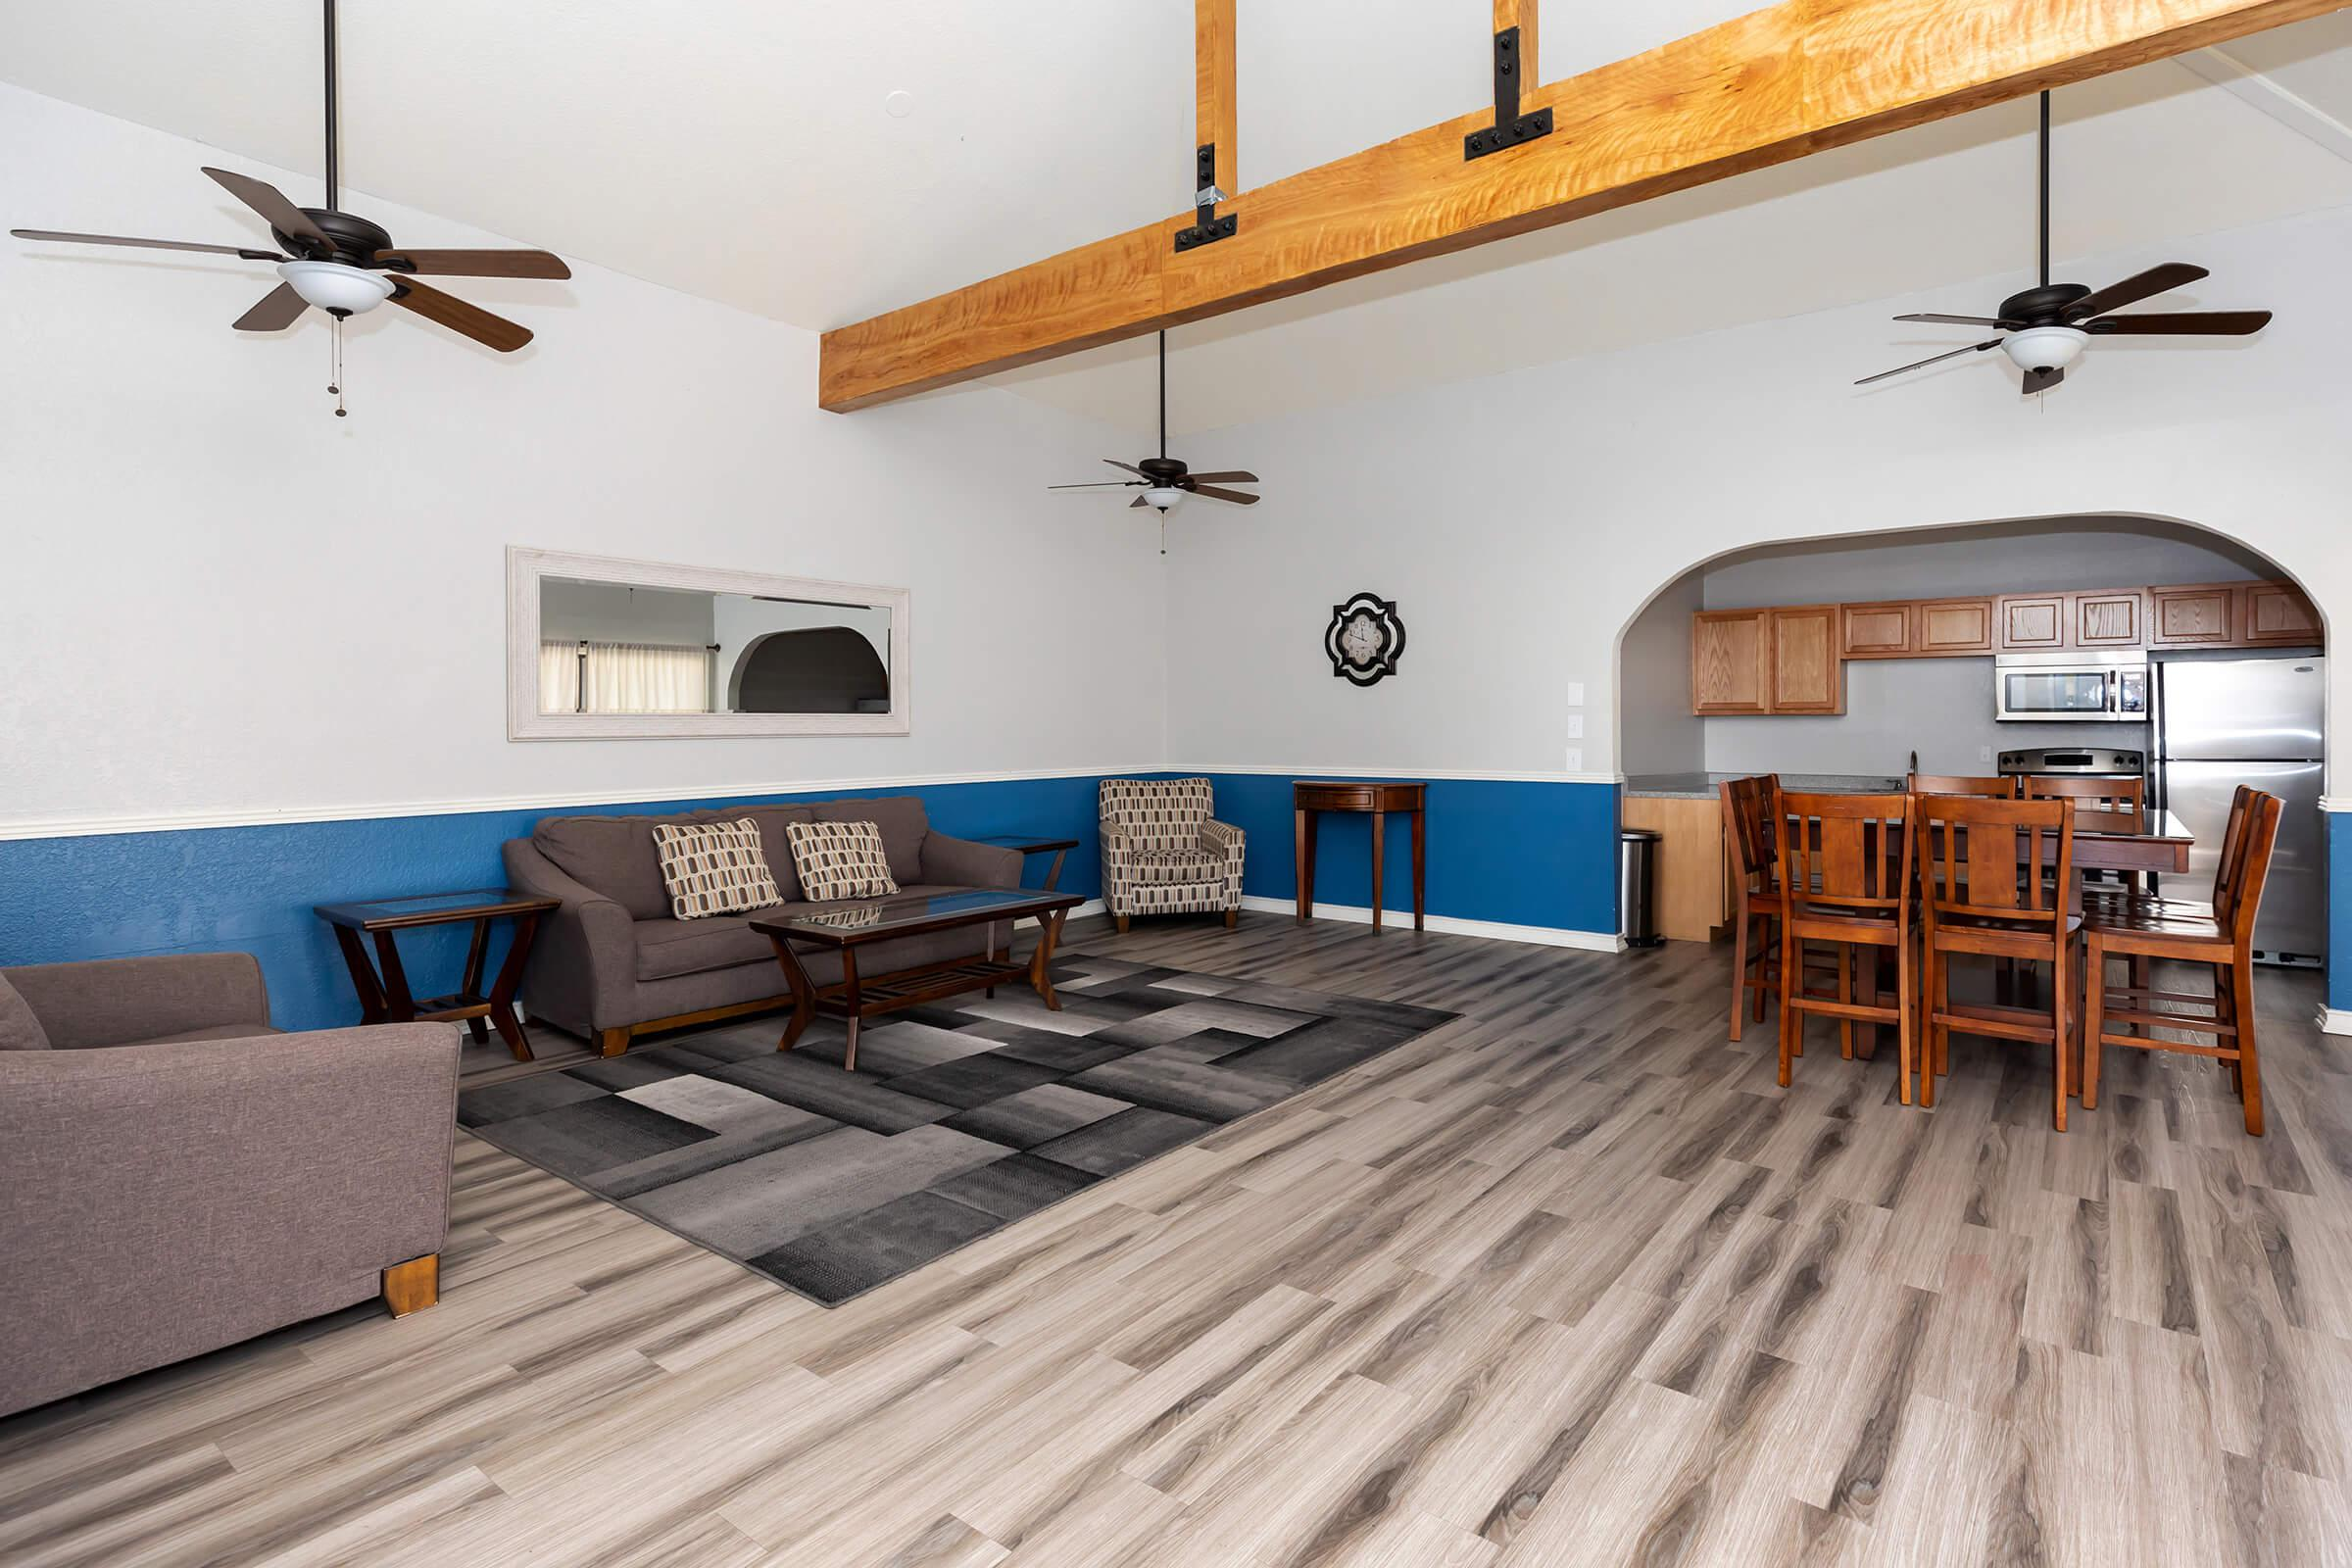 a living area with wooden wheels in a room